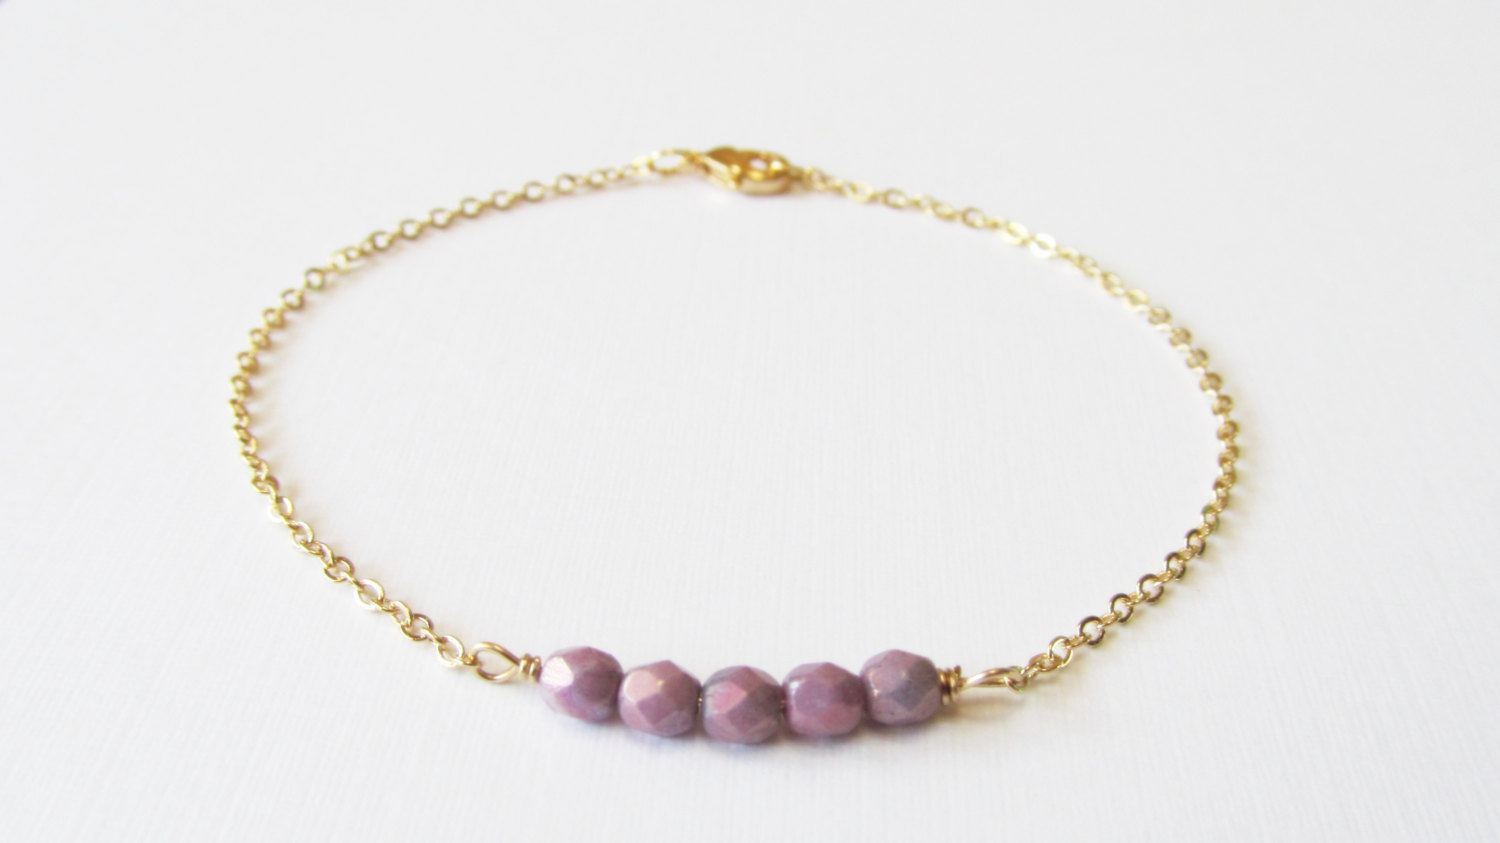 Dainty Beaded Gold Bracelet 14kt Filled Gift For Her